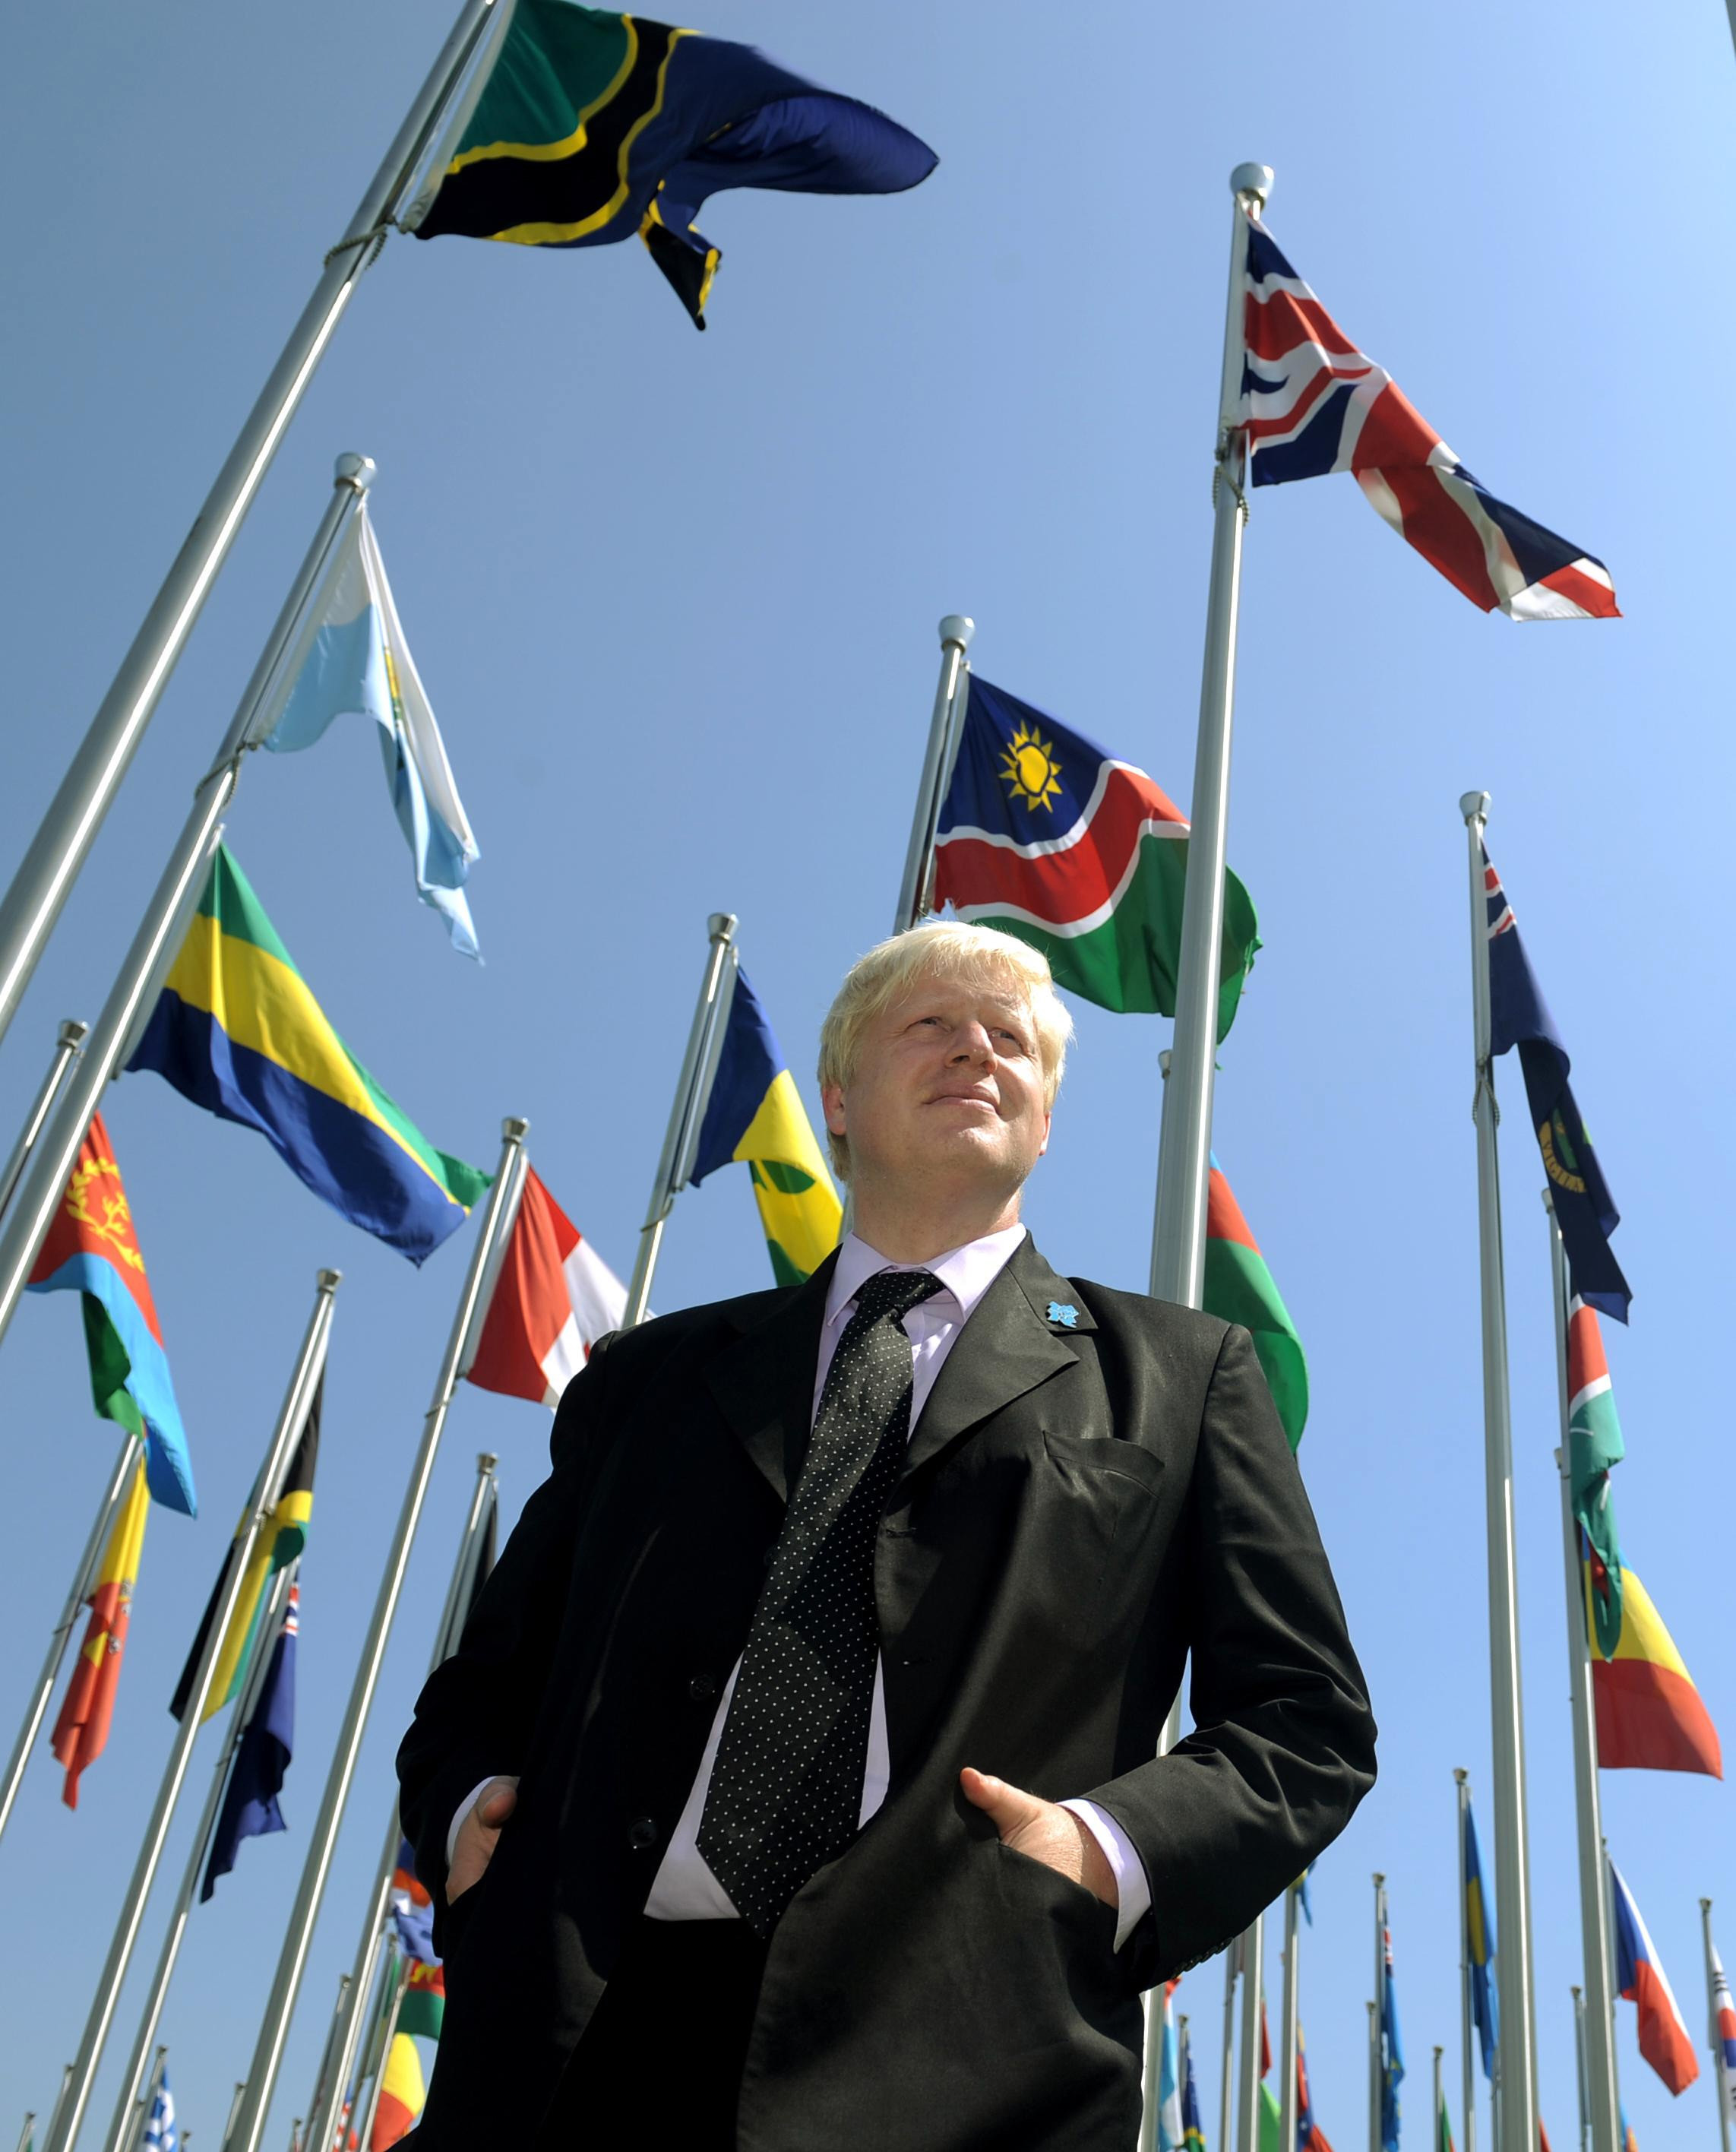 London Mayor Boris Johnson visits the athletes' village in Beijing where he is attending the last few days of the 2008 Olympic Games, and participating in the London Handover during the closing ceremony on Sunday.